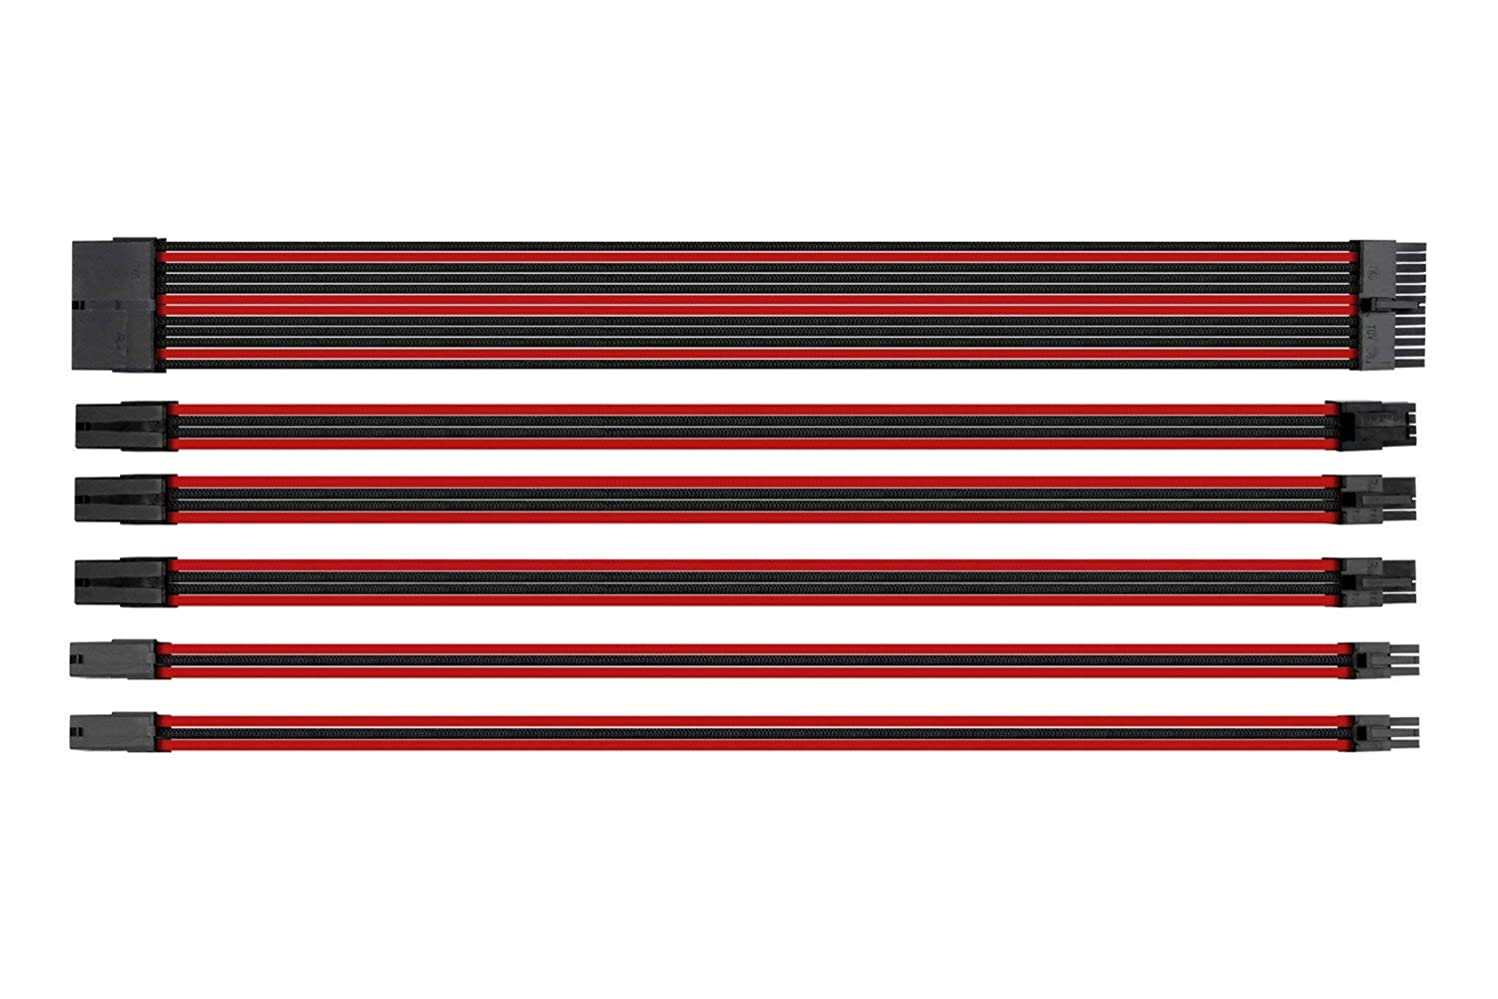 ATX Computer Sleeved Extension Cable Management,6 Pack with Cable Comb (Redblack)